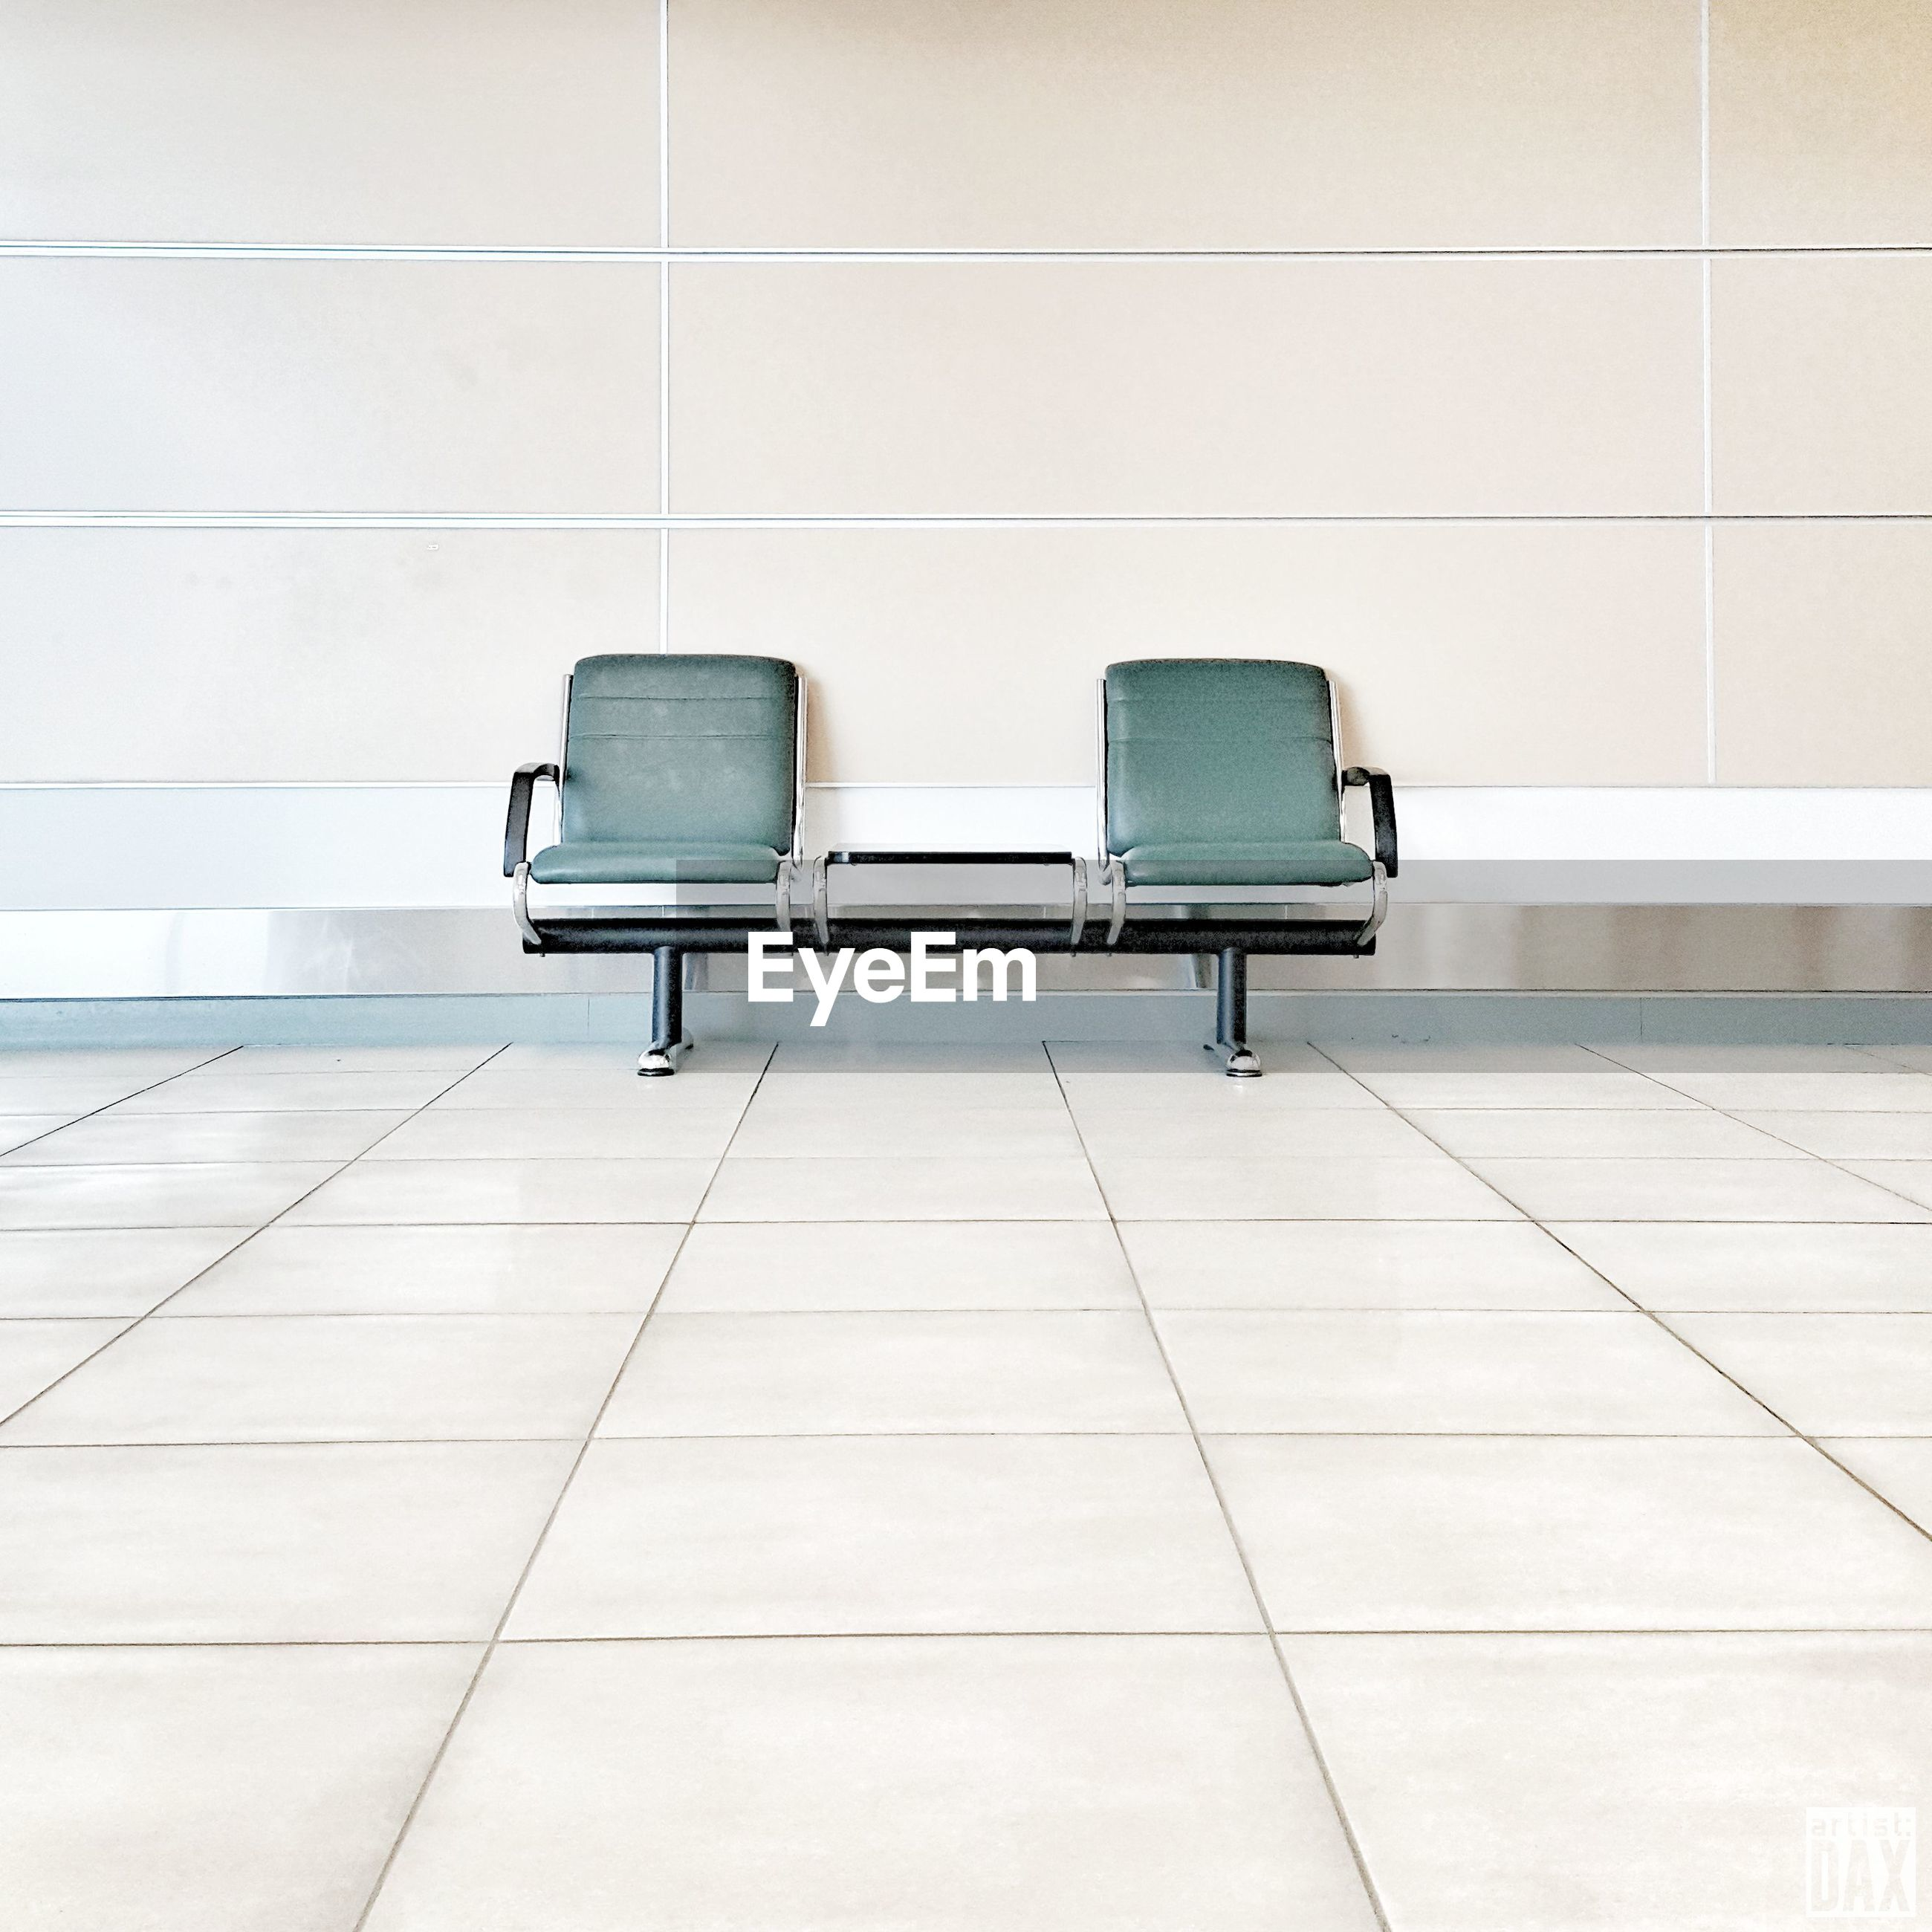 chair, no people, waiting room, architecture, indoors, day